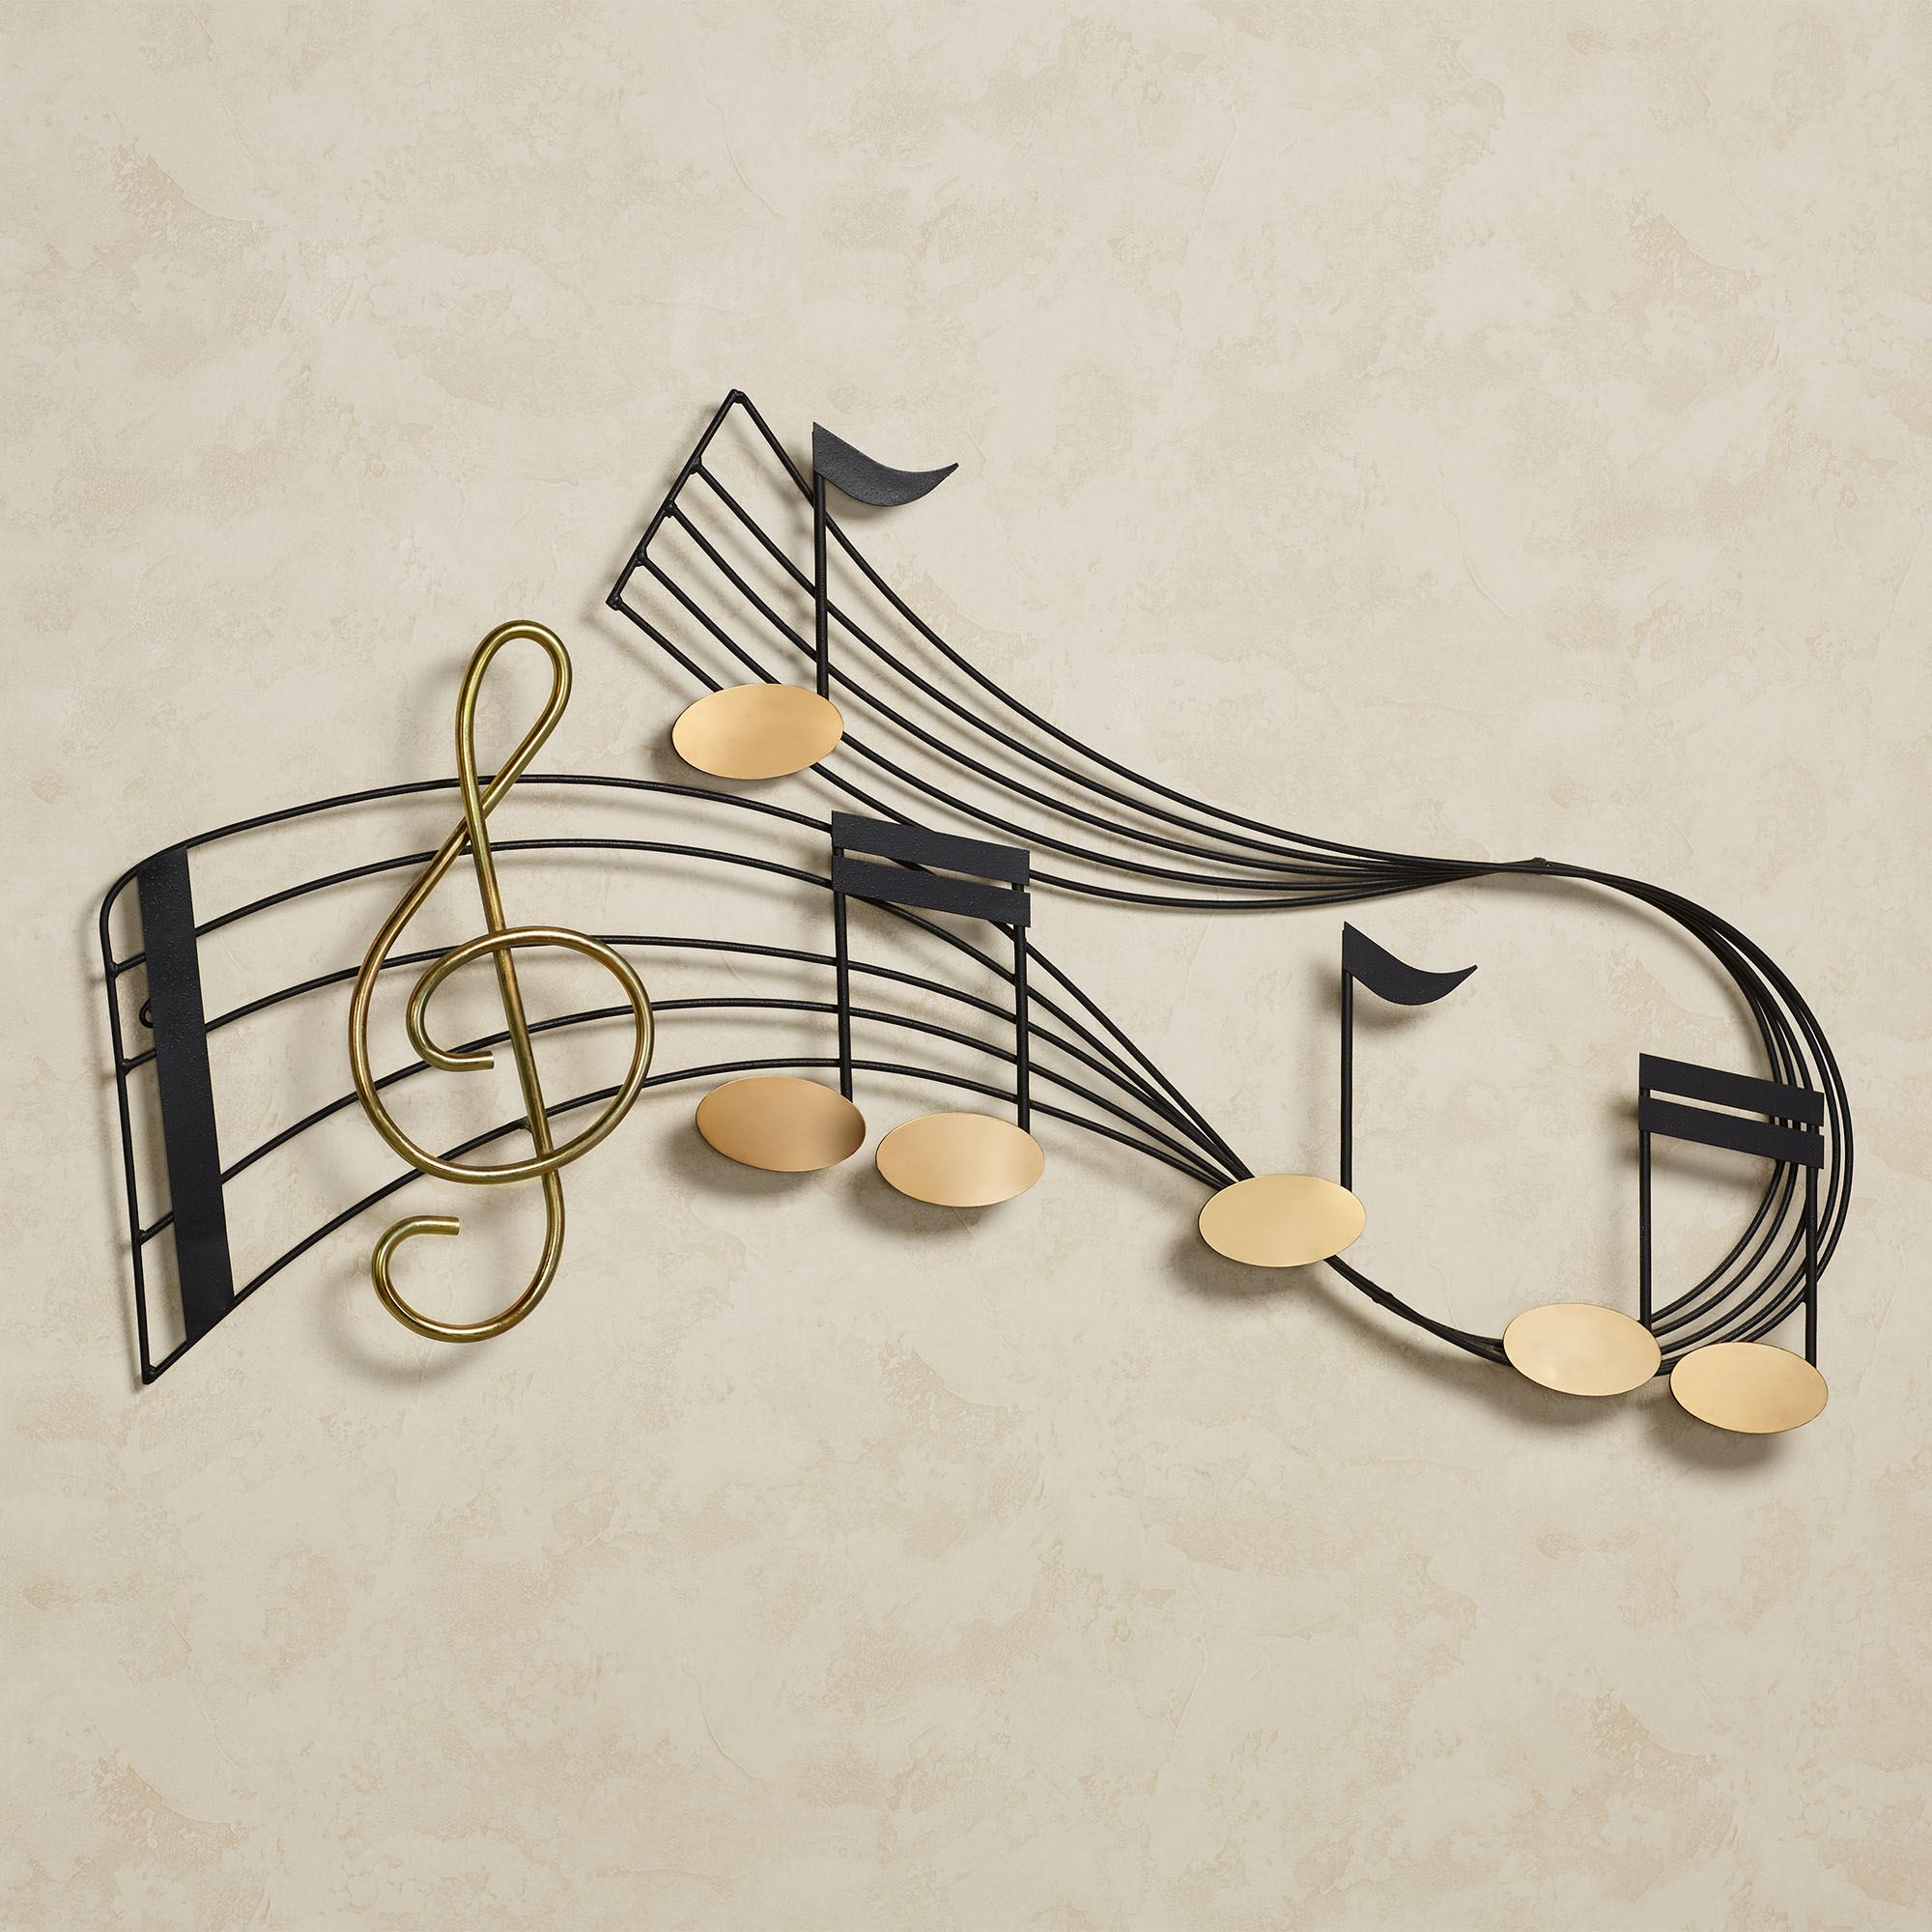 Music Notes Metal Wall Art Rhythm Music Staff Metal Wall Sculpture